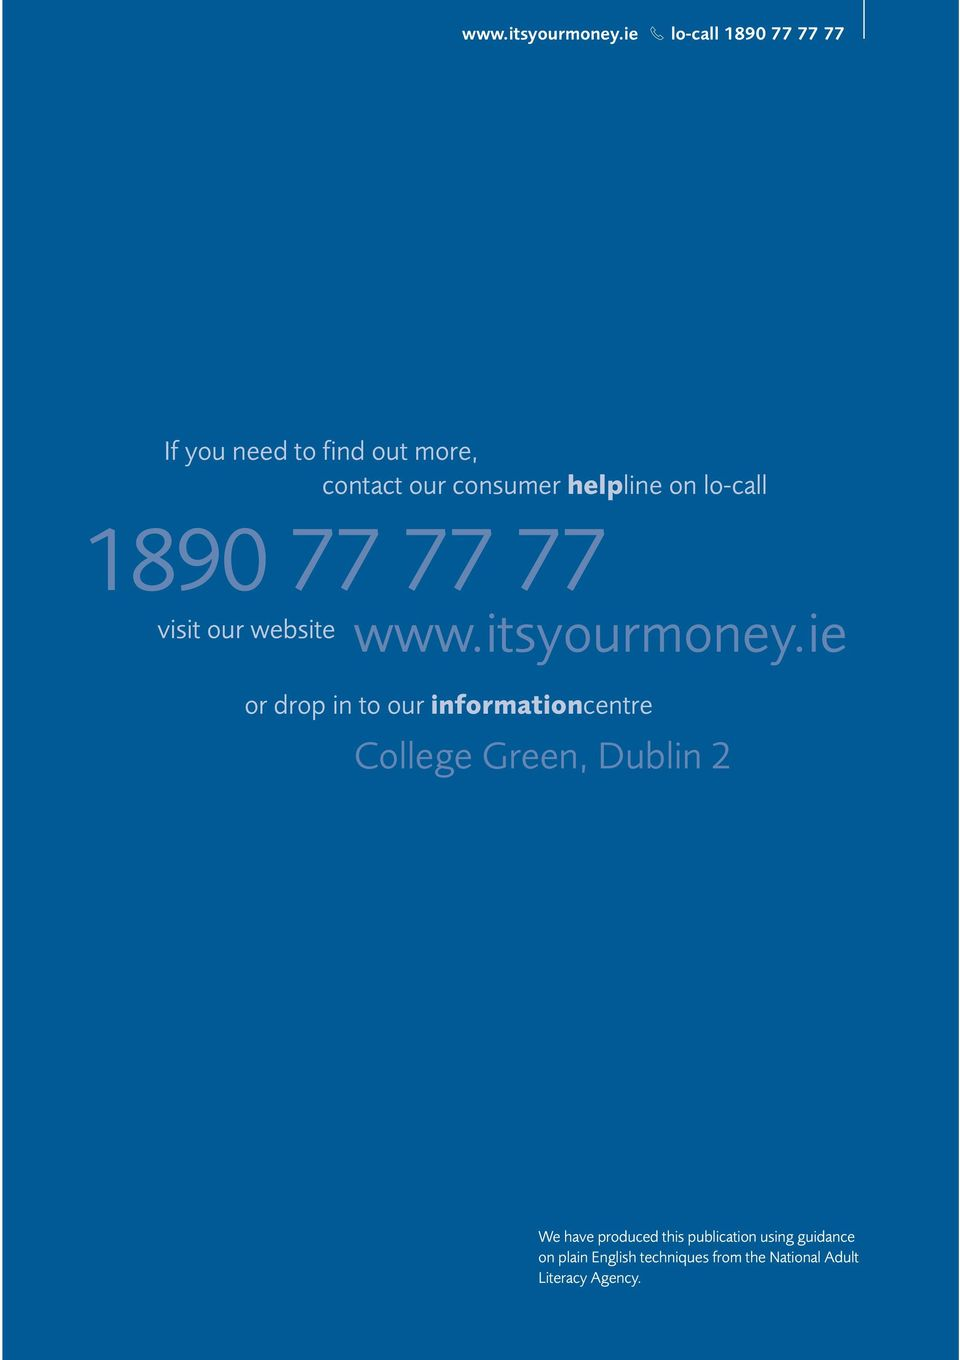 helpline on lo-call 1890 77 77 77 visit our website ie or drop in to our